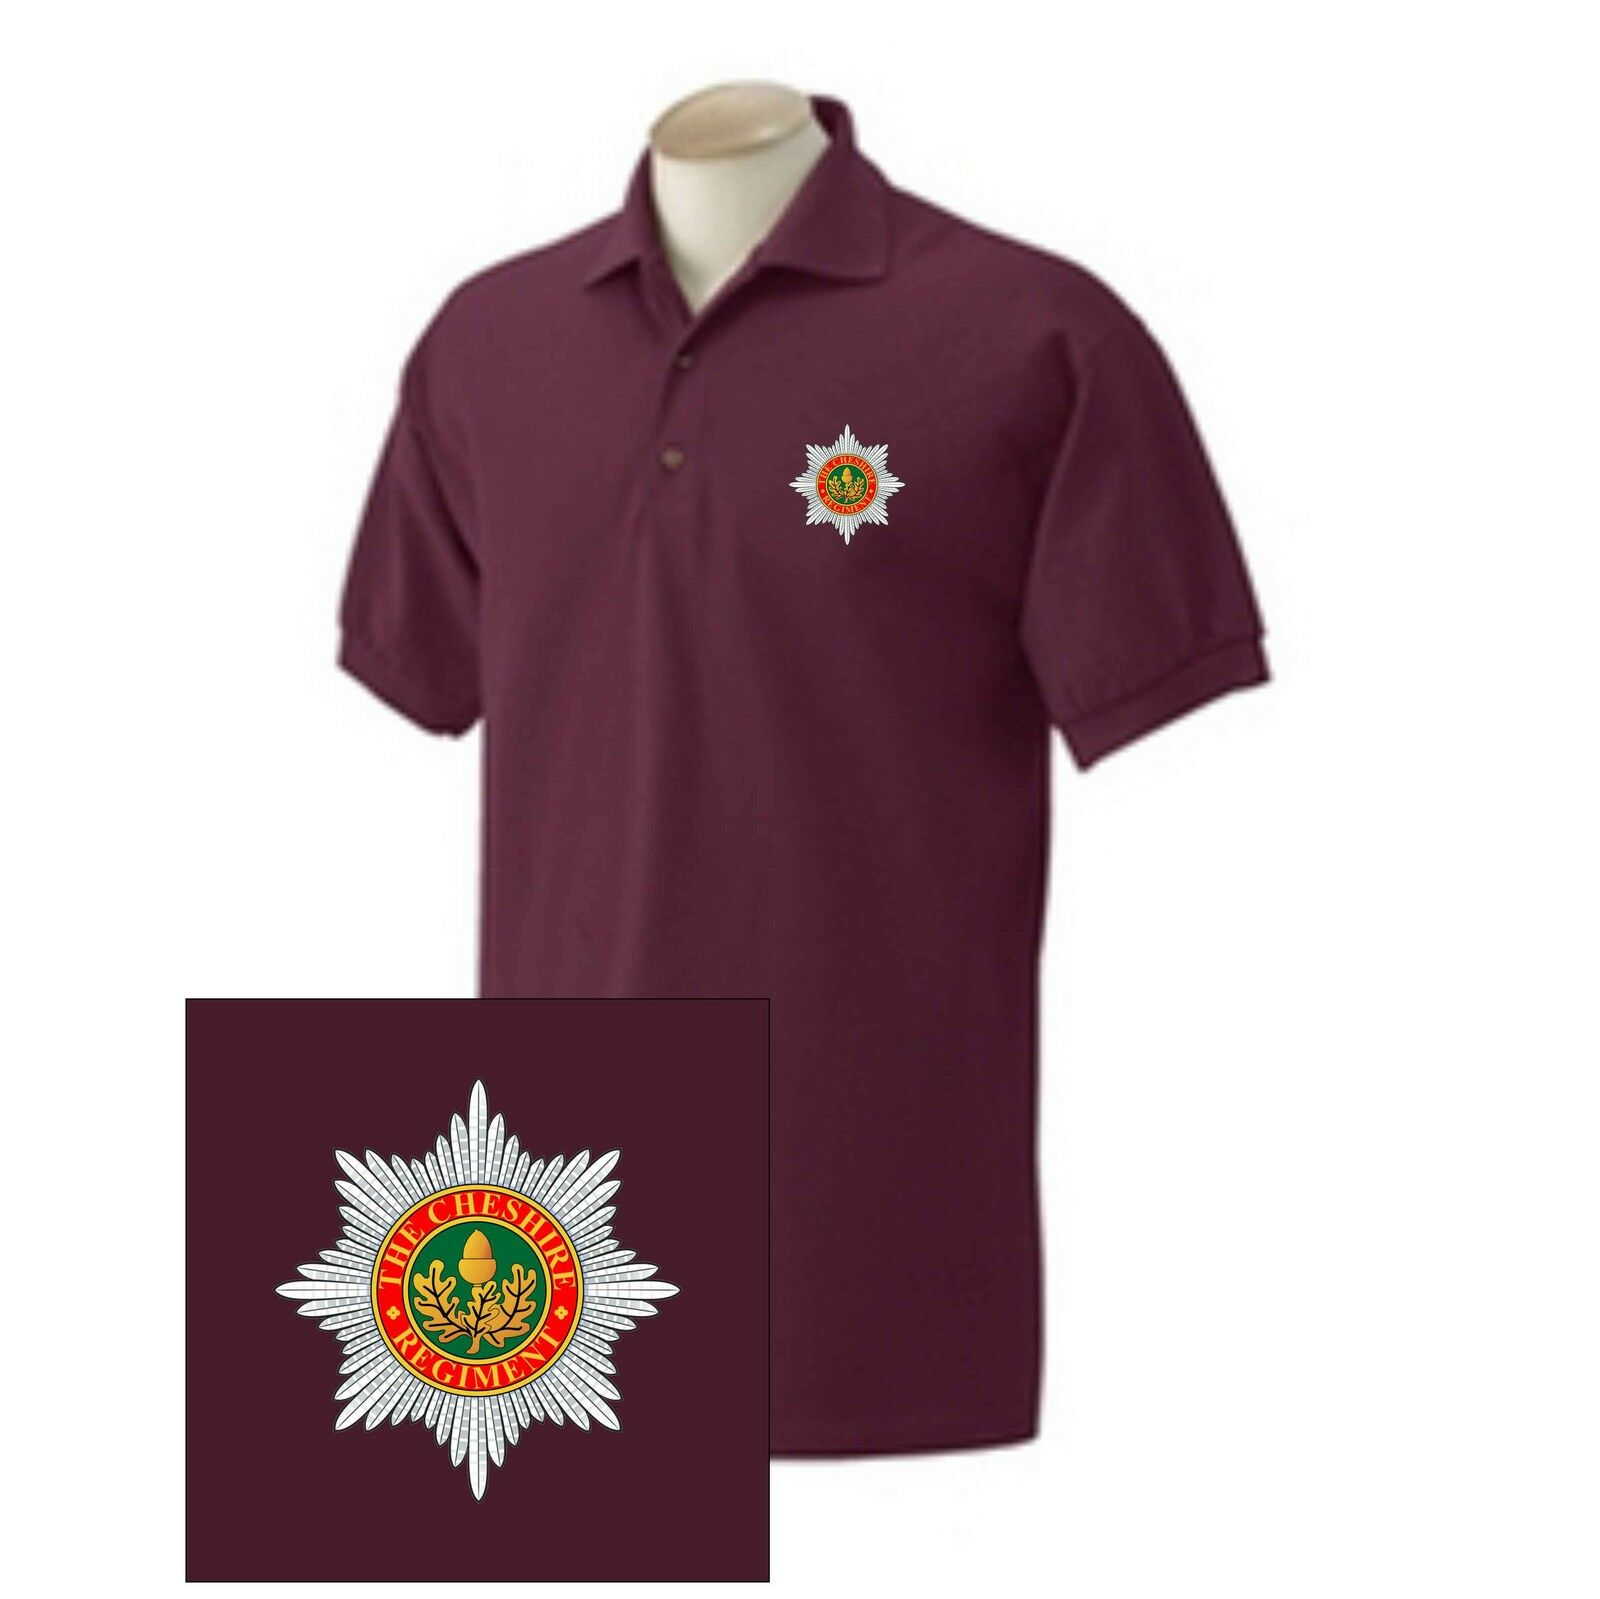 1rd Battalion Custom Embroidered Parachute Regiment Polo Shirts /& T-Shirts new